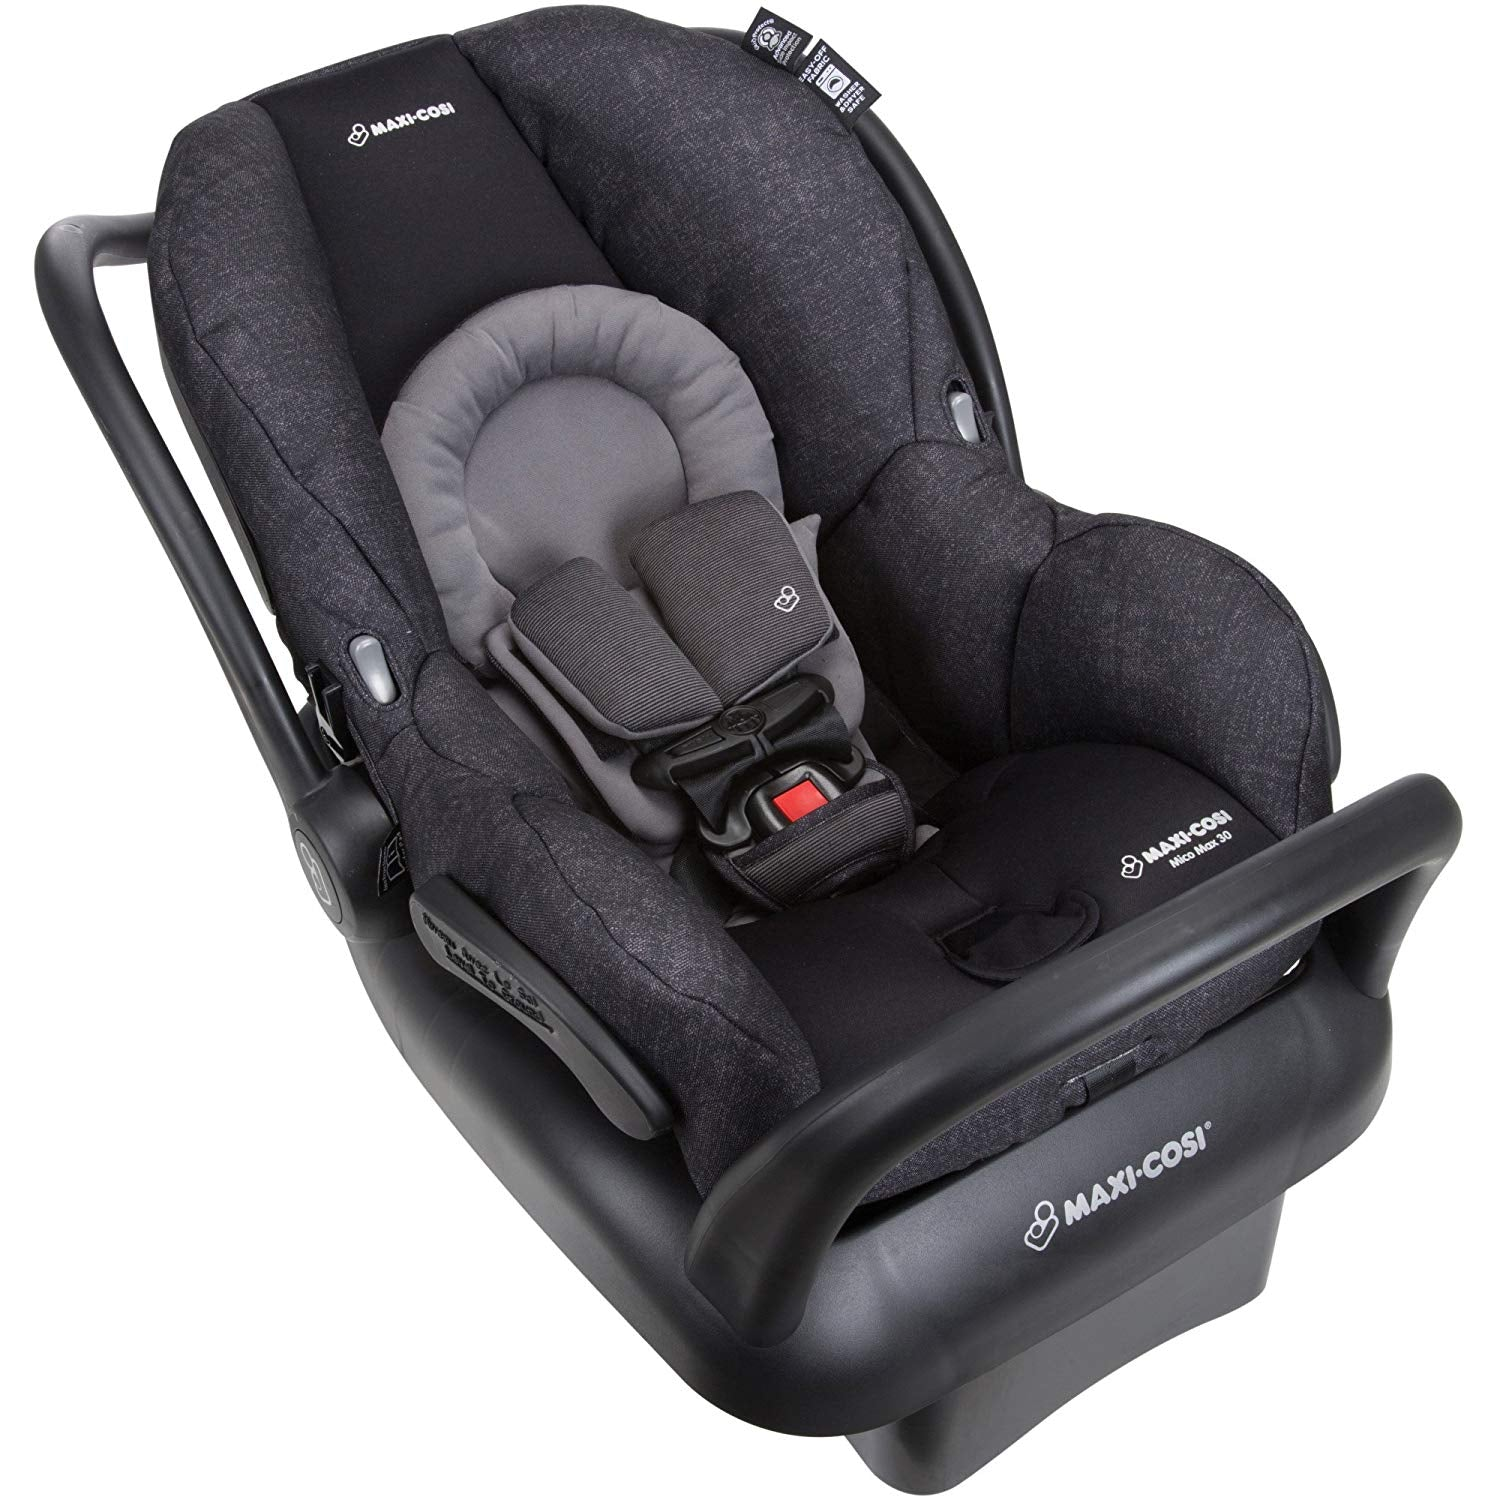 Maxi Cosi MicoR Max 30 Nomad Collection Infant Car Seat In Black